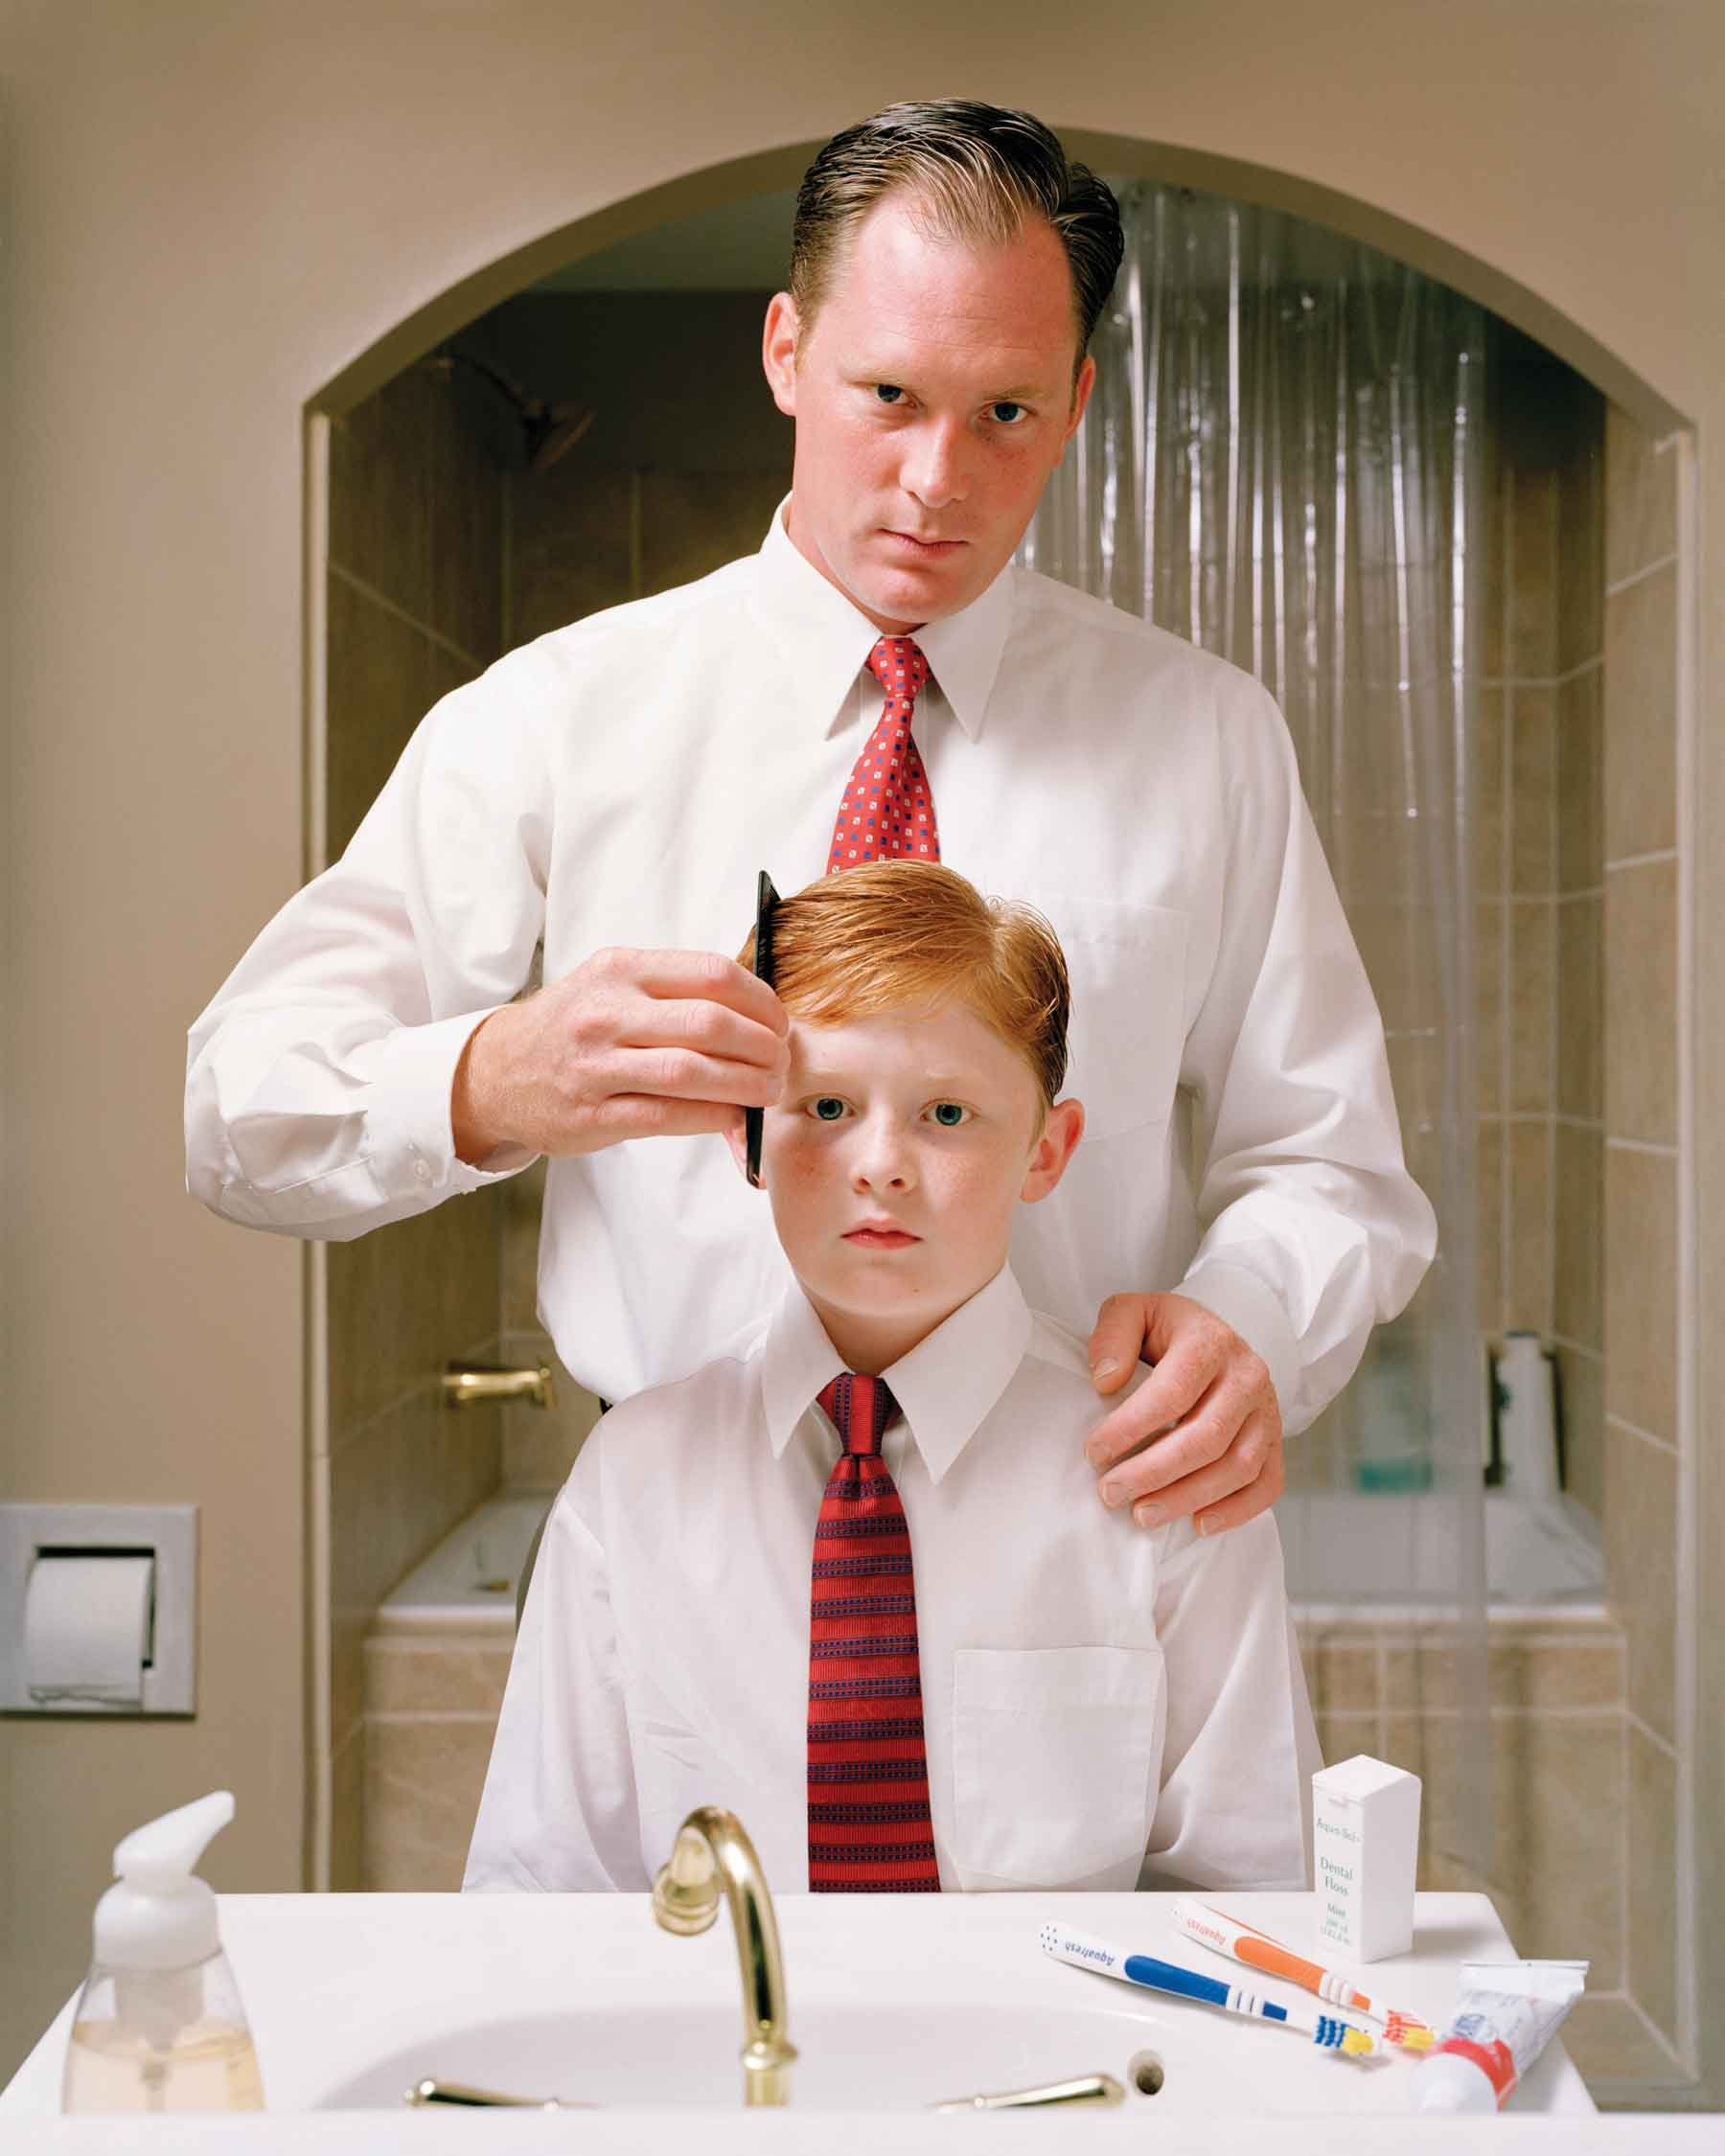 "Angela Strassheim, Untitled (Father and Son), 2004, C-print, 40"" x 30"", (From The Left Behind series)"